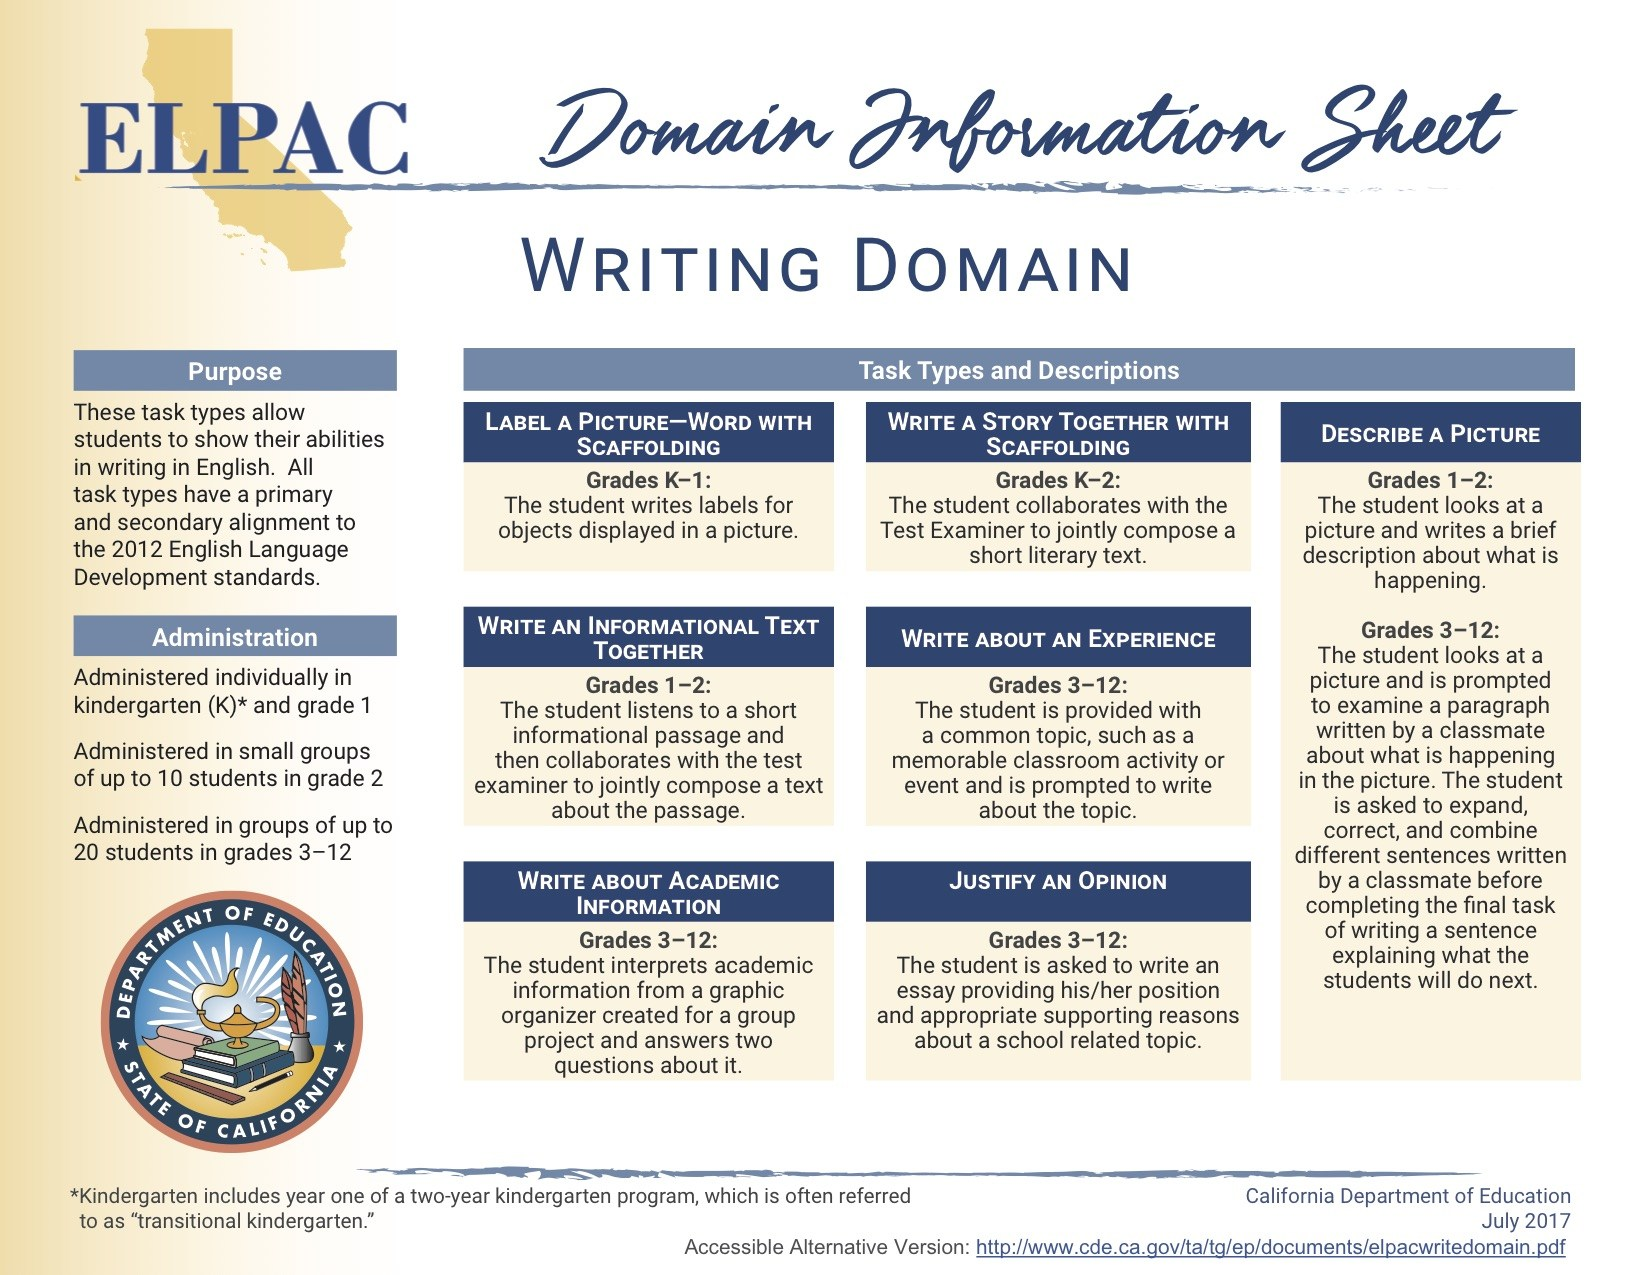 ELPAC Writing Domain Information Sheet